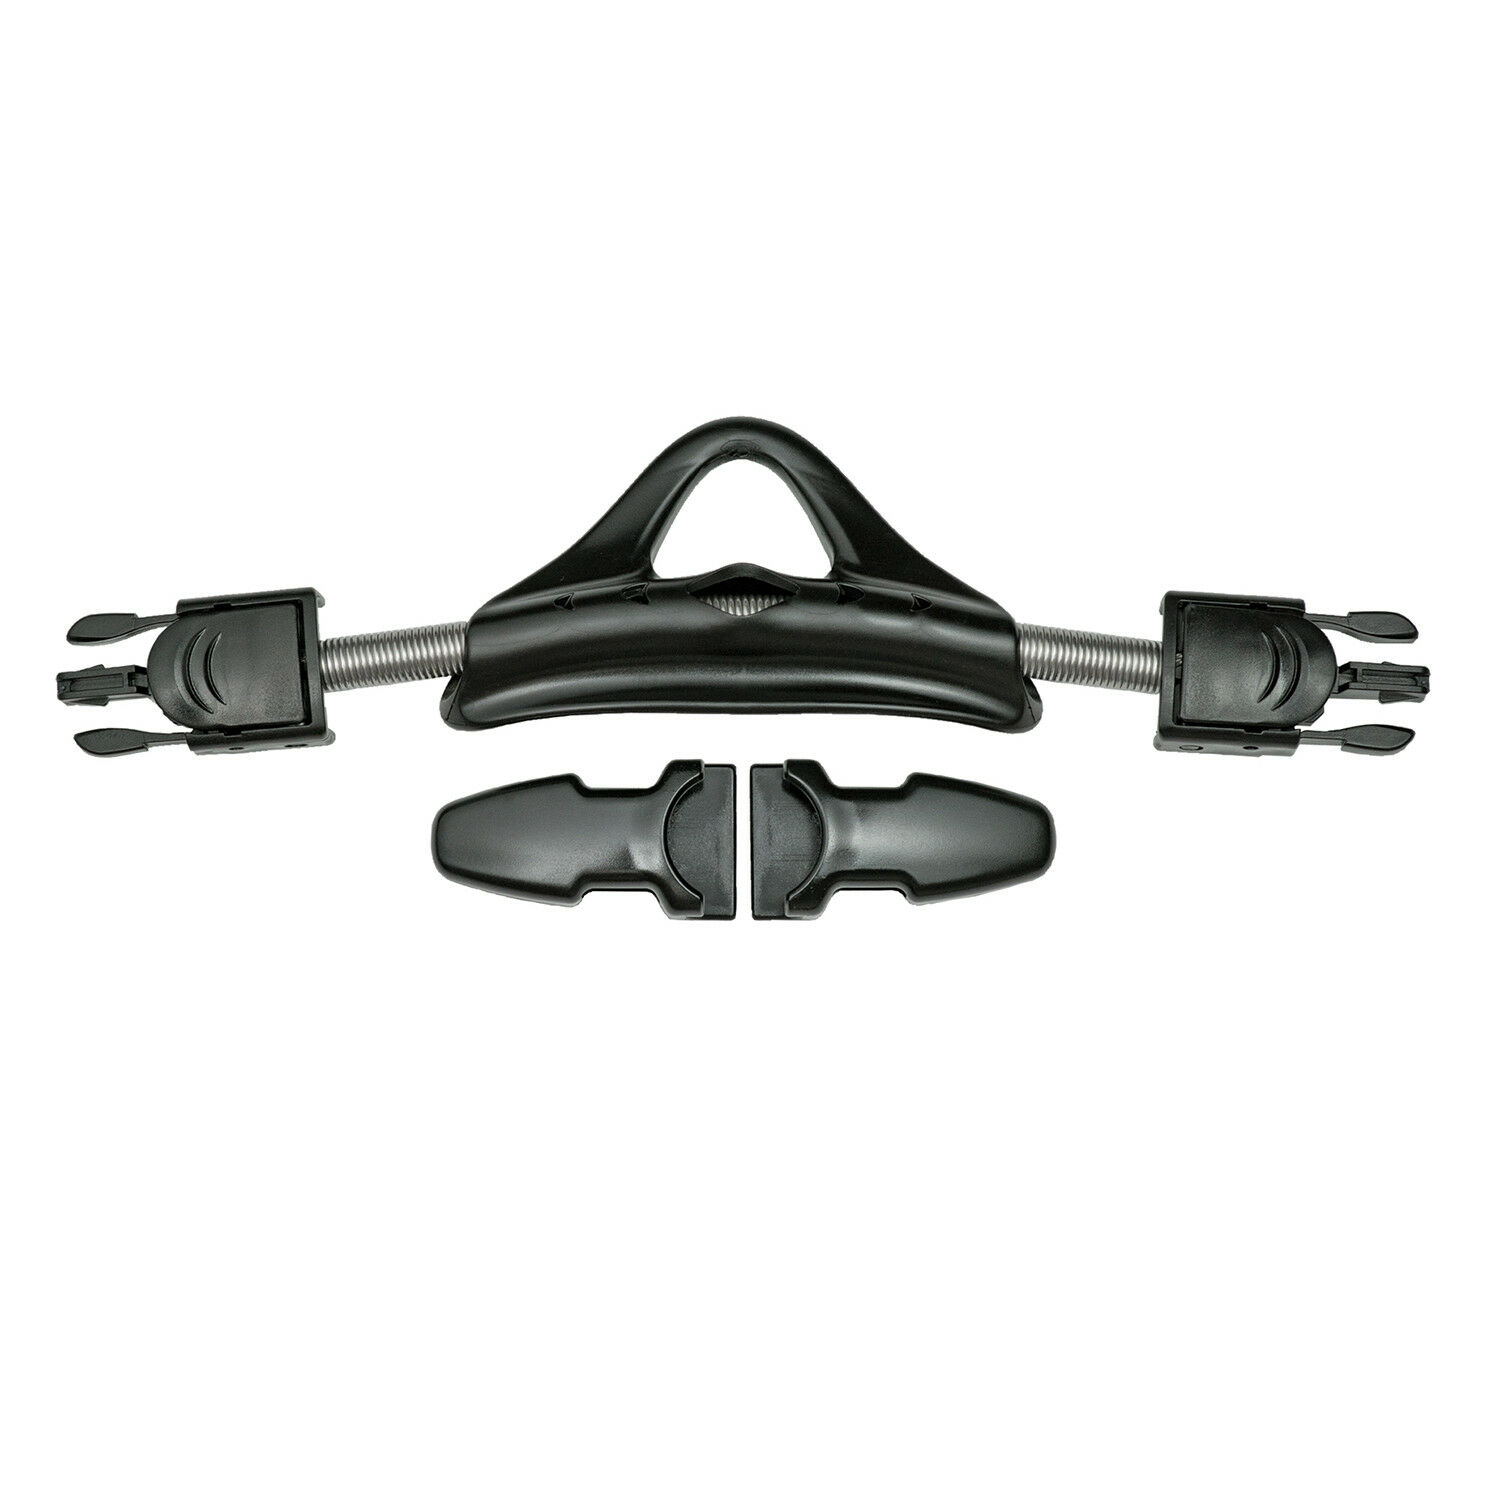 TUSA EZ Spring Replacement Fin Straps, Stainless Steel Size S,M,L